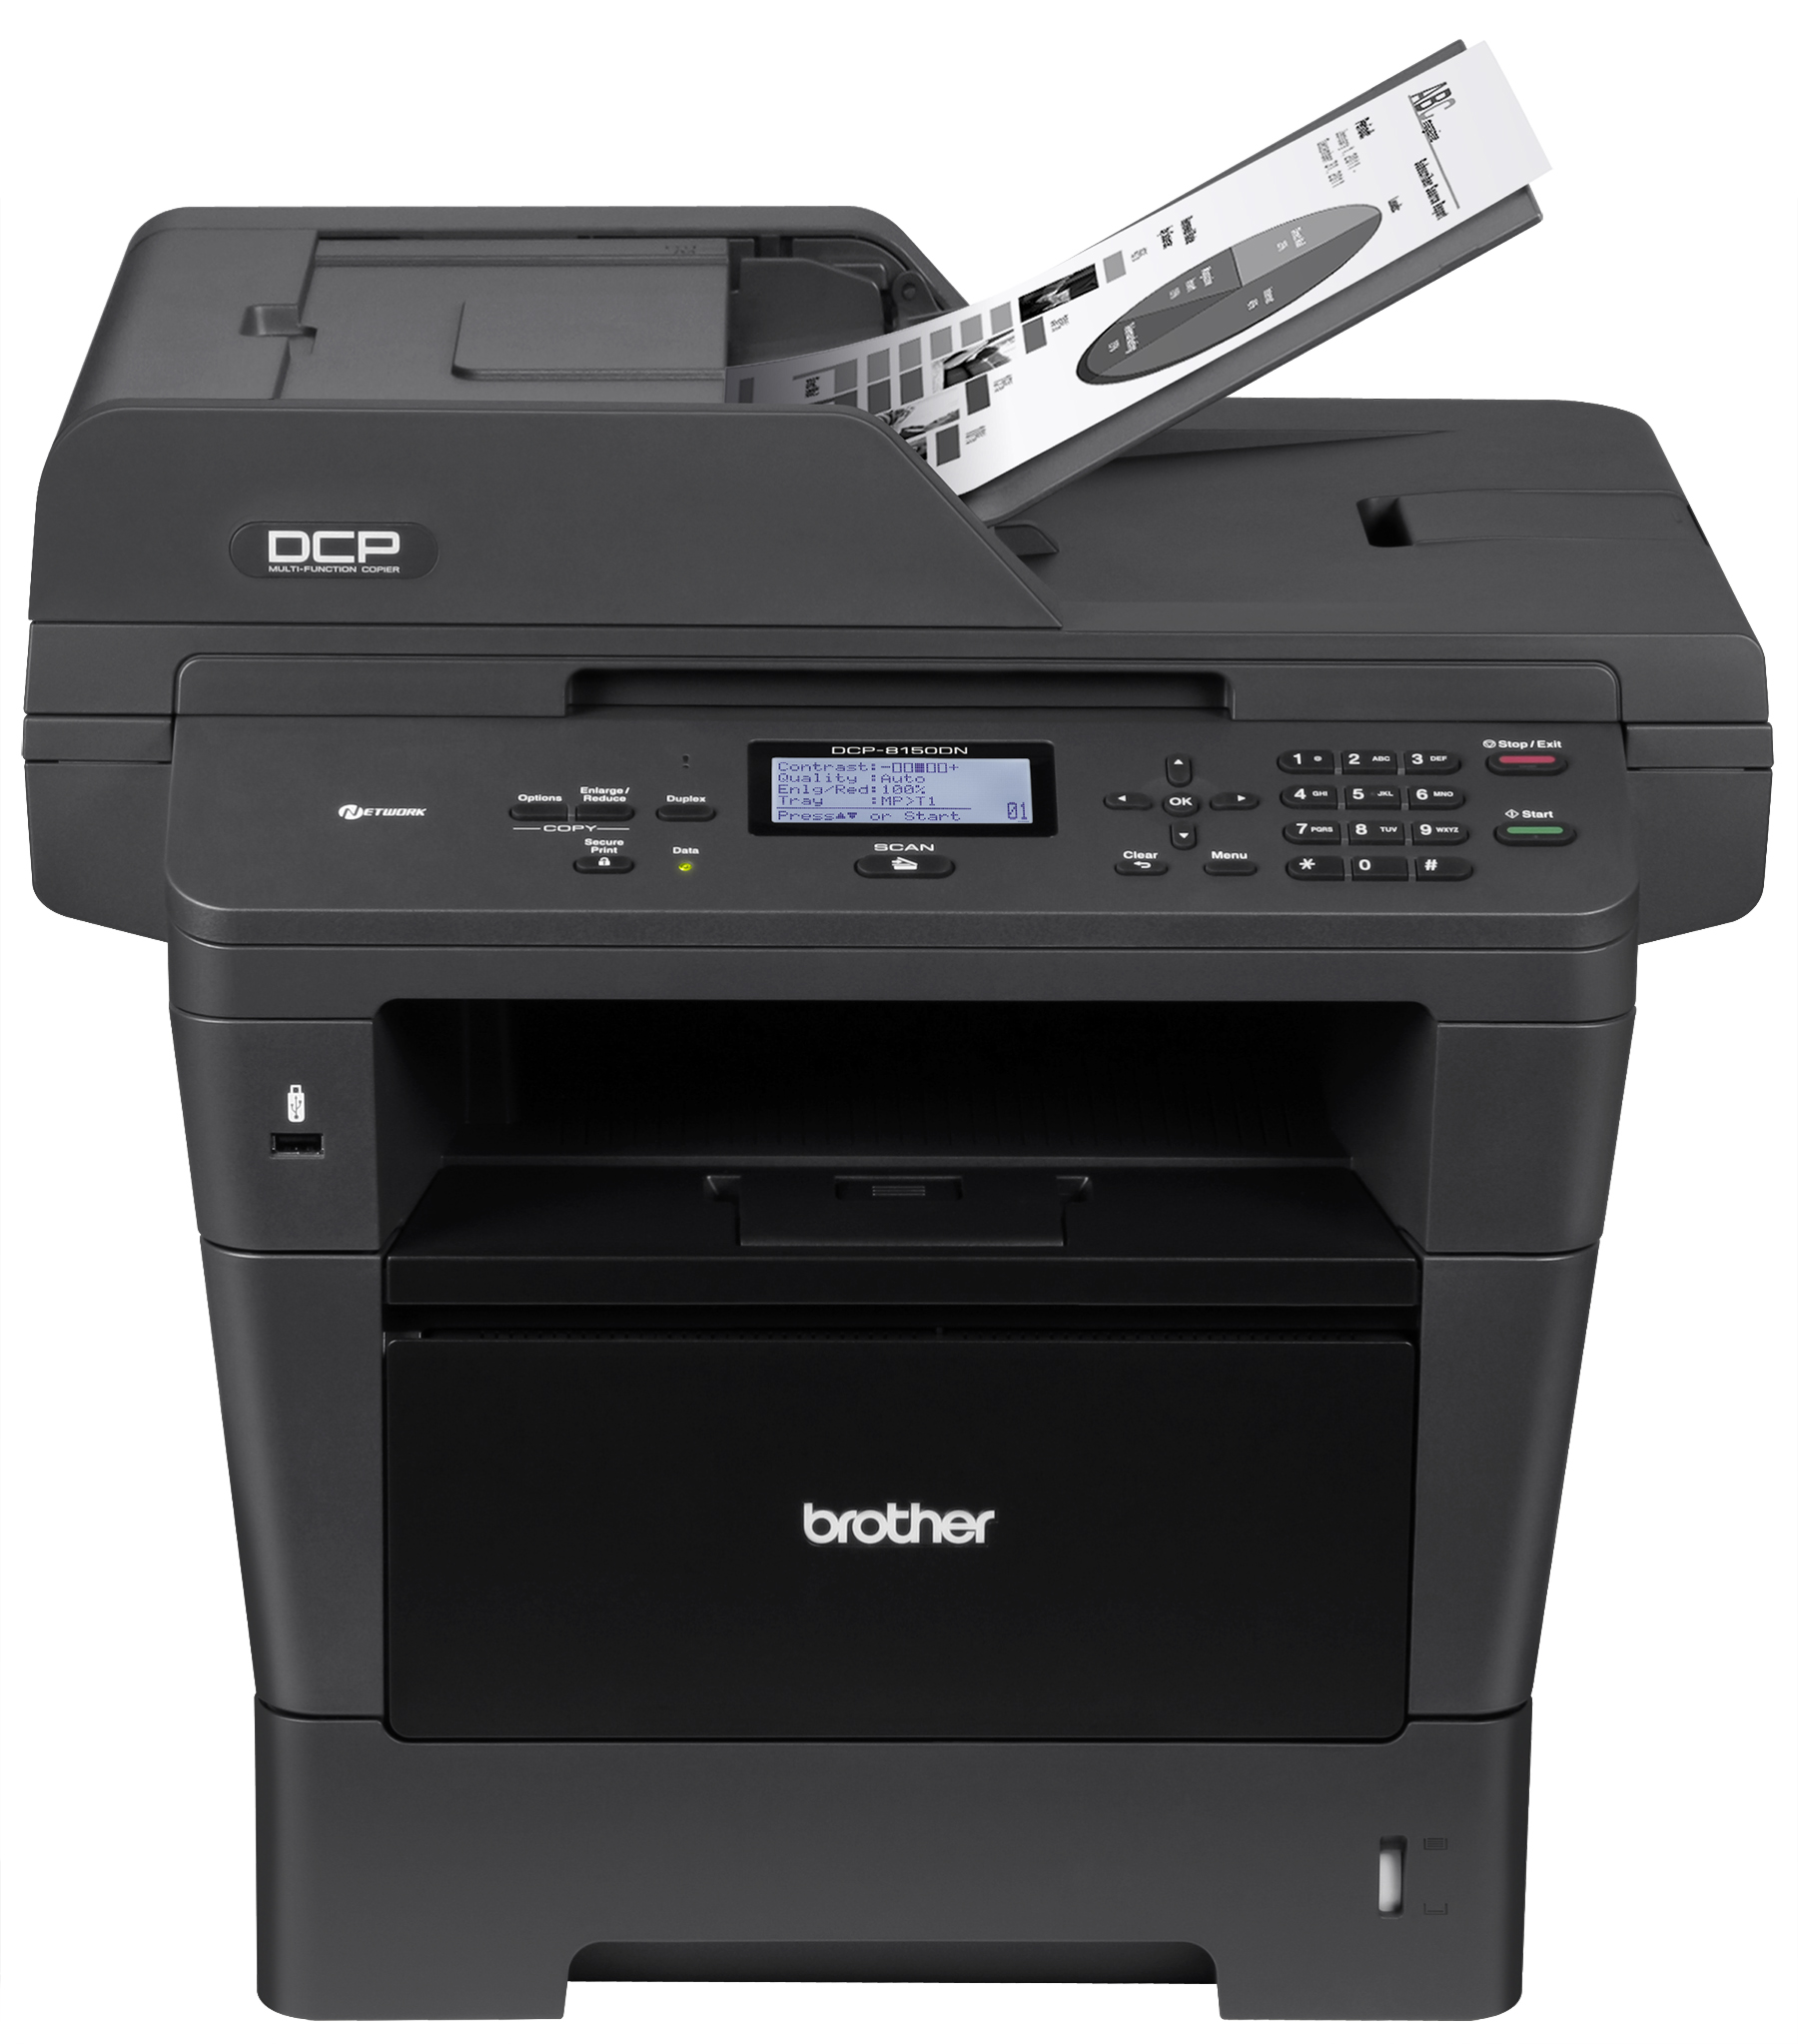 Download Driver: Brother DCP-8150DN XML Paper Specification Printer